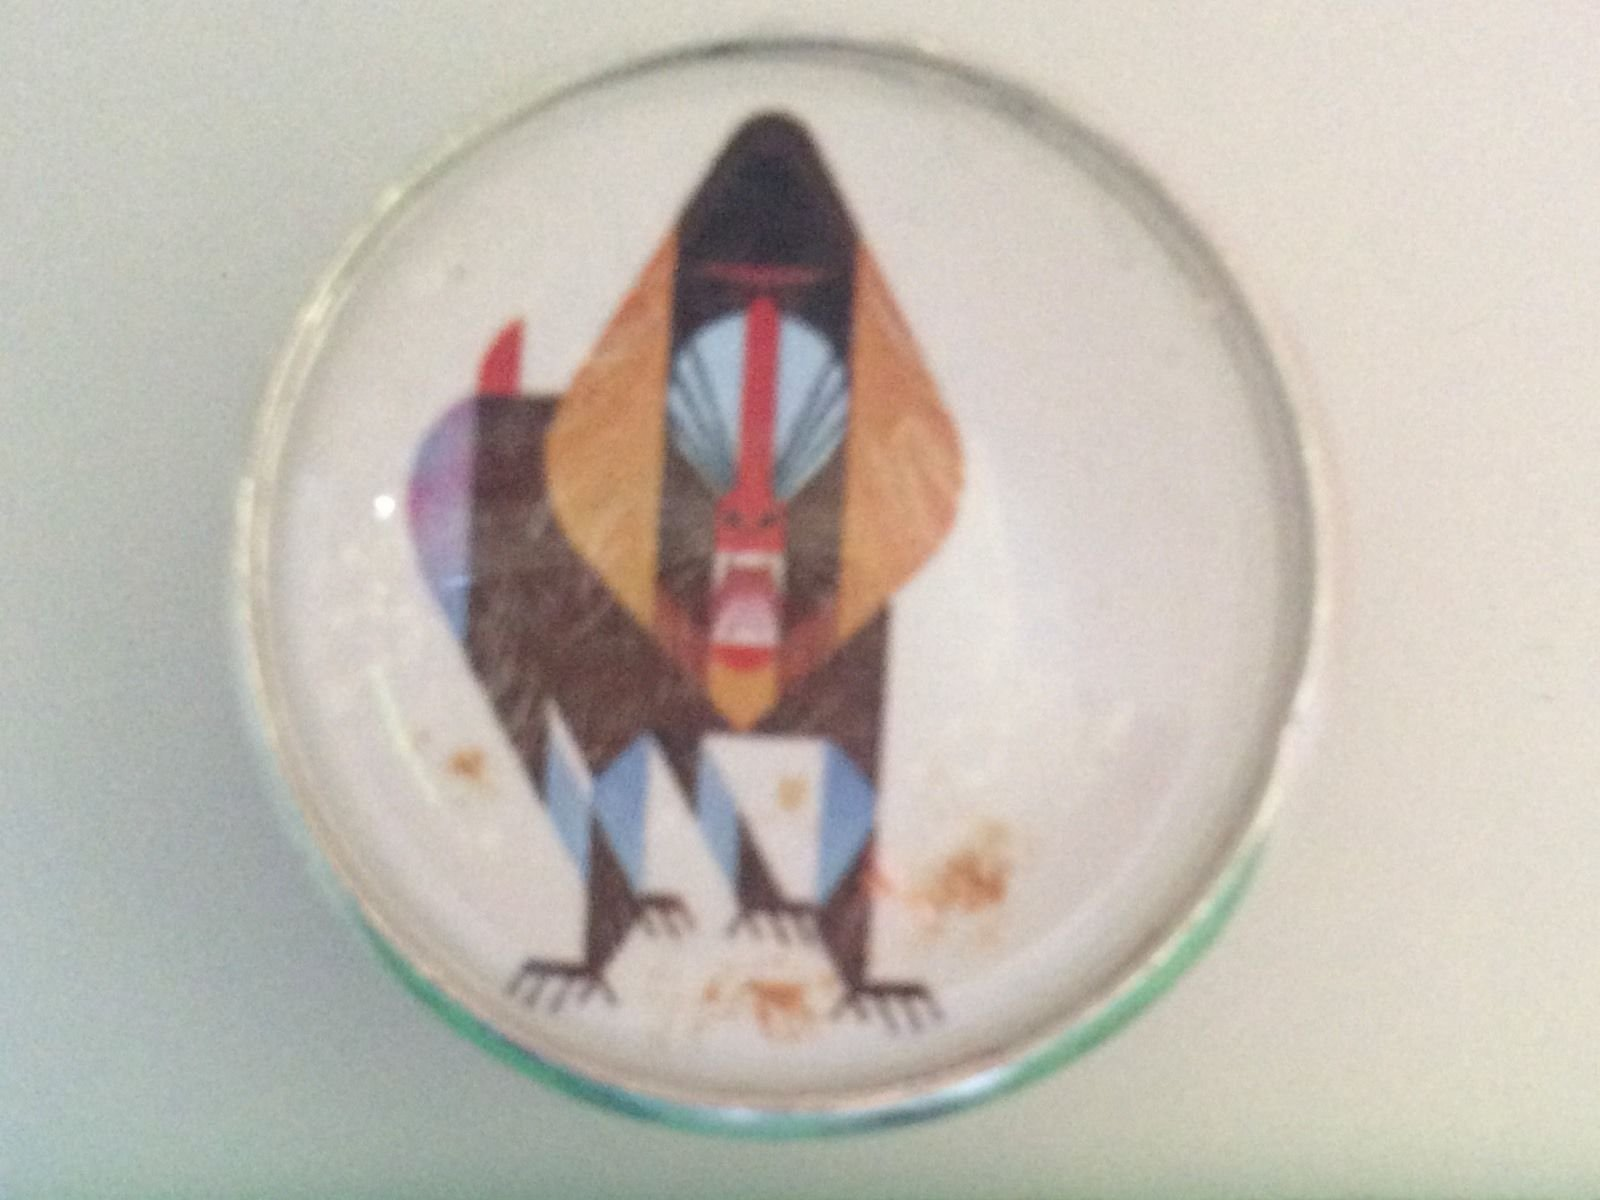 Charley Harper Mandrill Threat Baboon Monkey 1 Glass Sewing Button Charles AK12